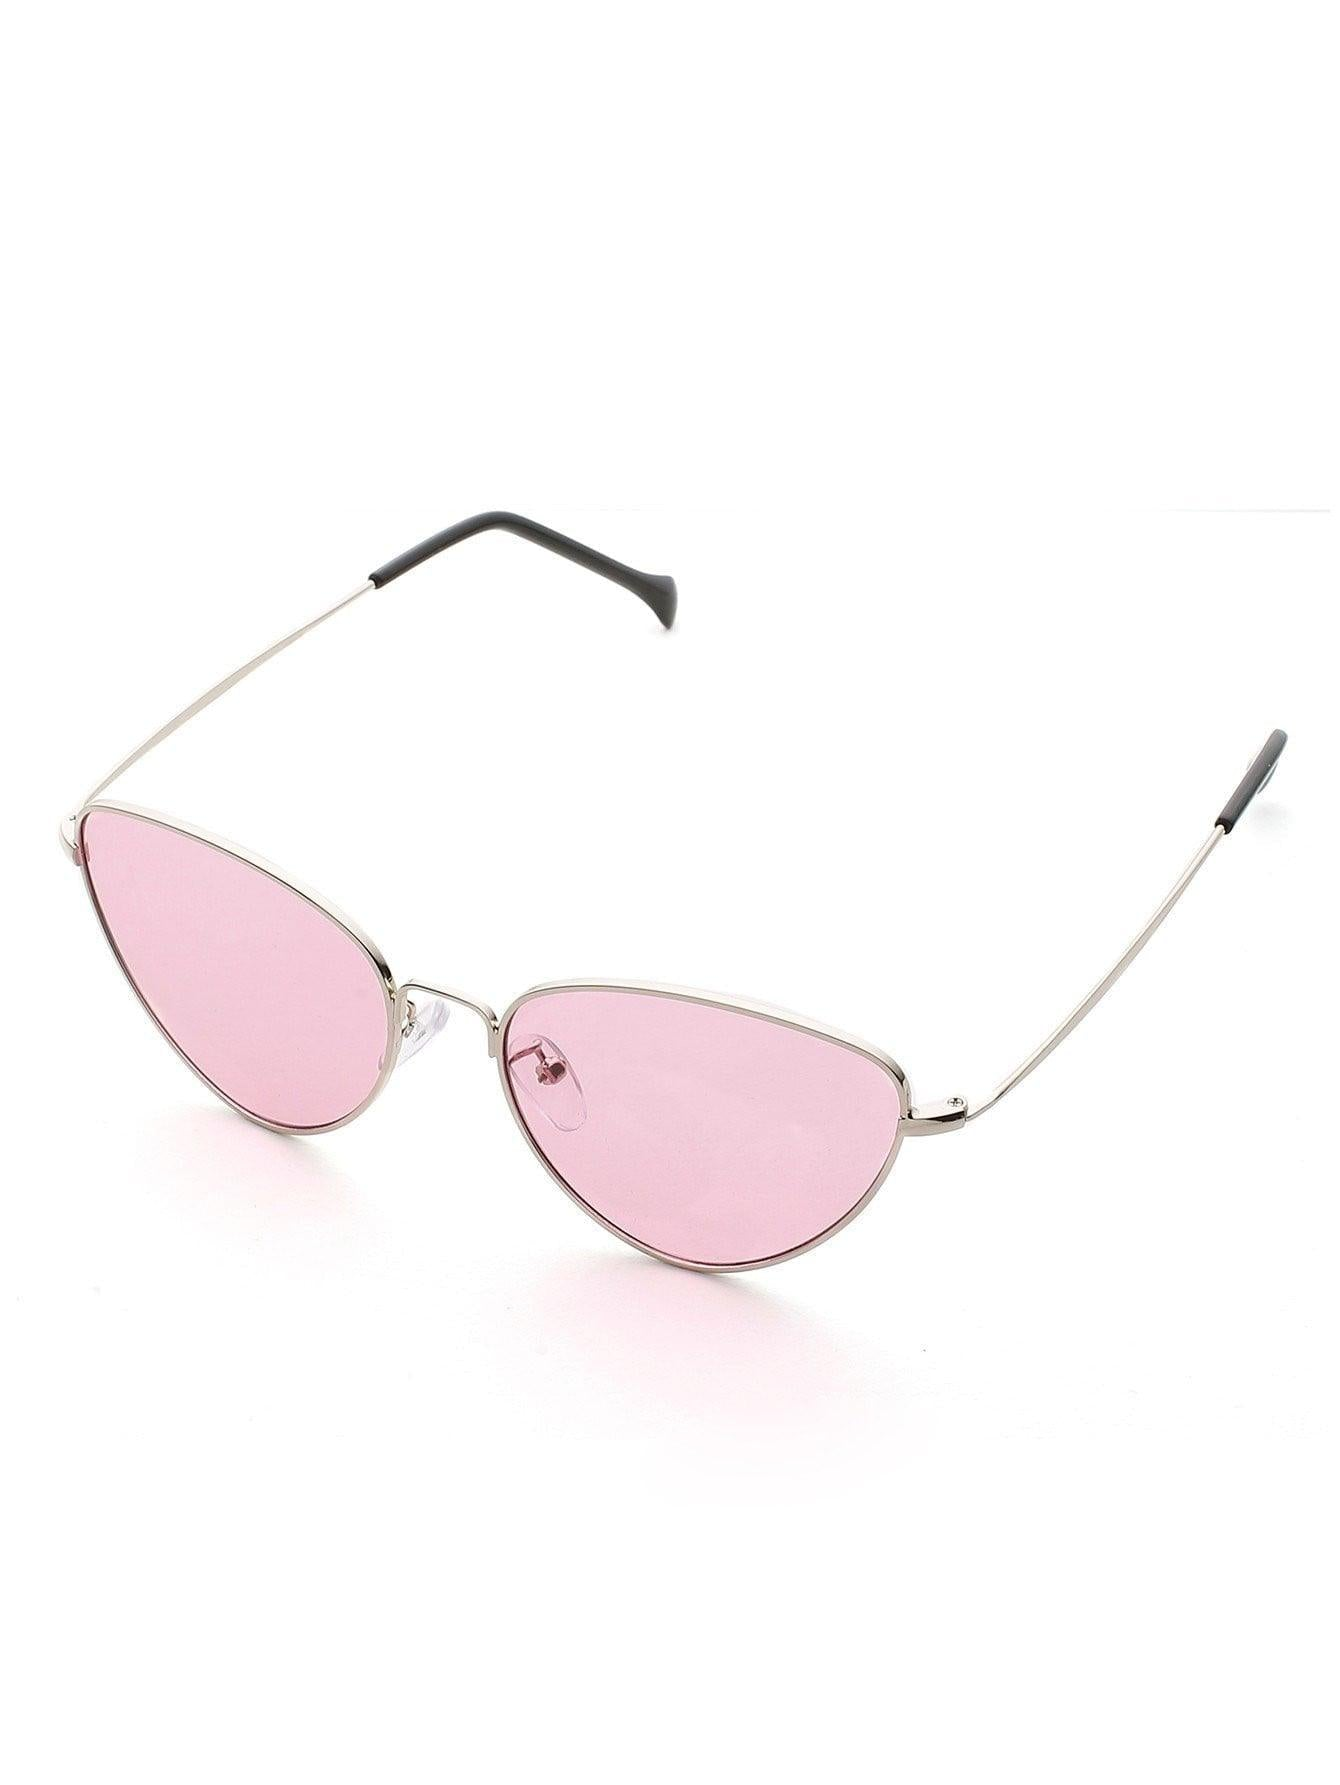 Oval Shaped Flat Lens Sunglasses - Sunglasses - Zooomberg - Zoomberg